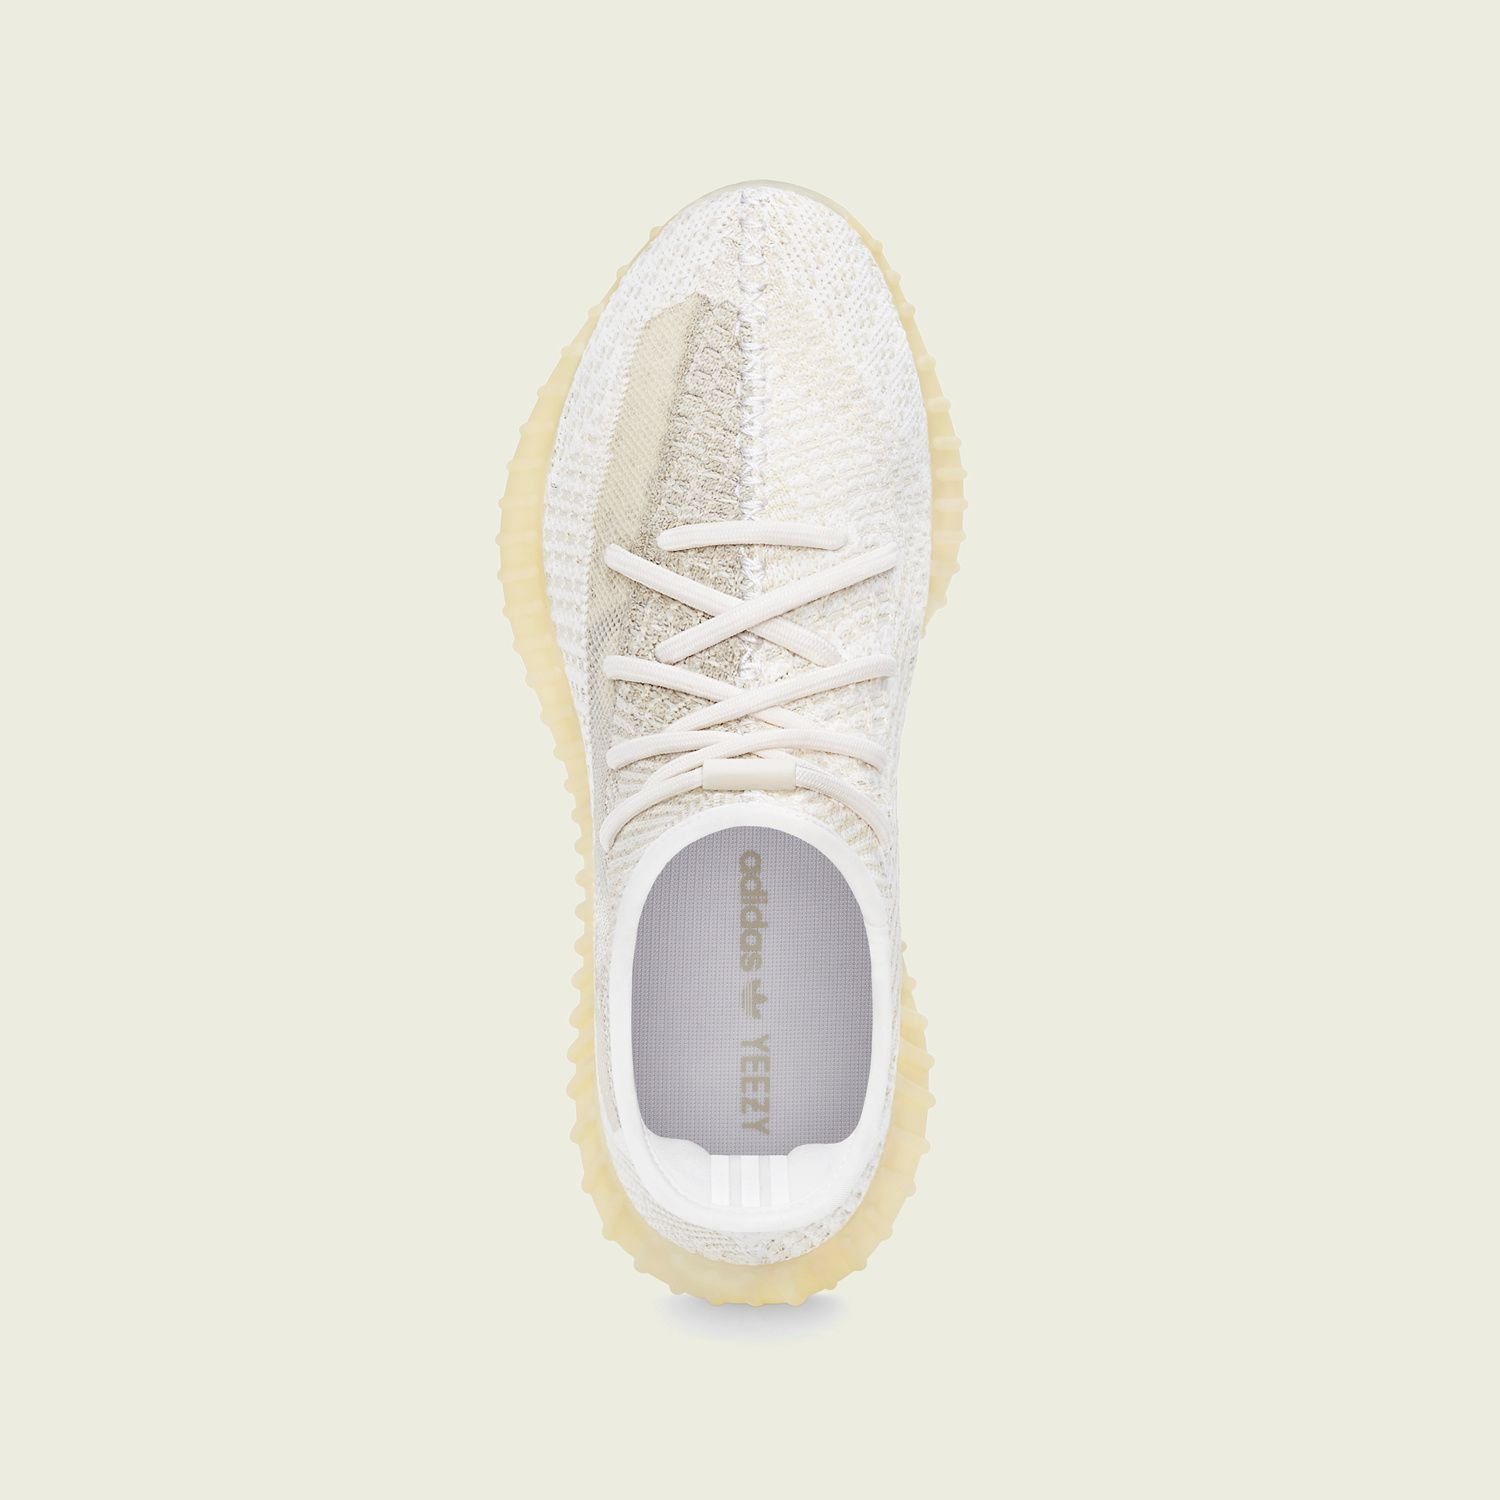 01-adidas-yeezy-boost-350-v2-natural-fz5246